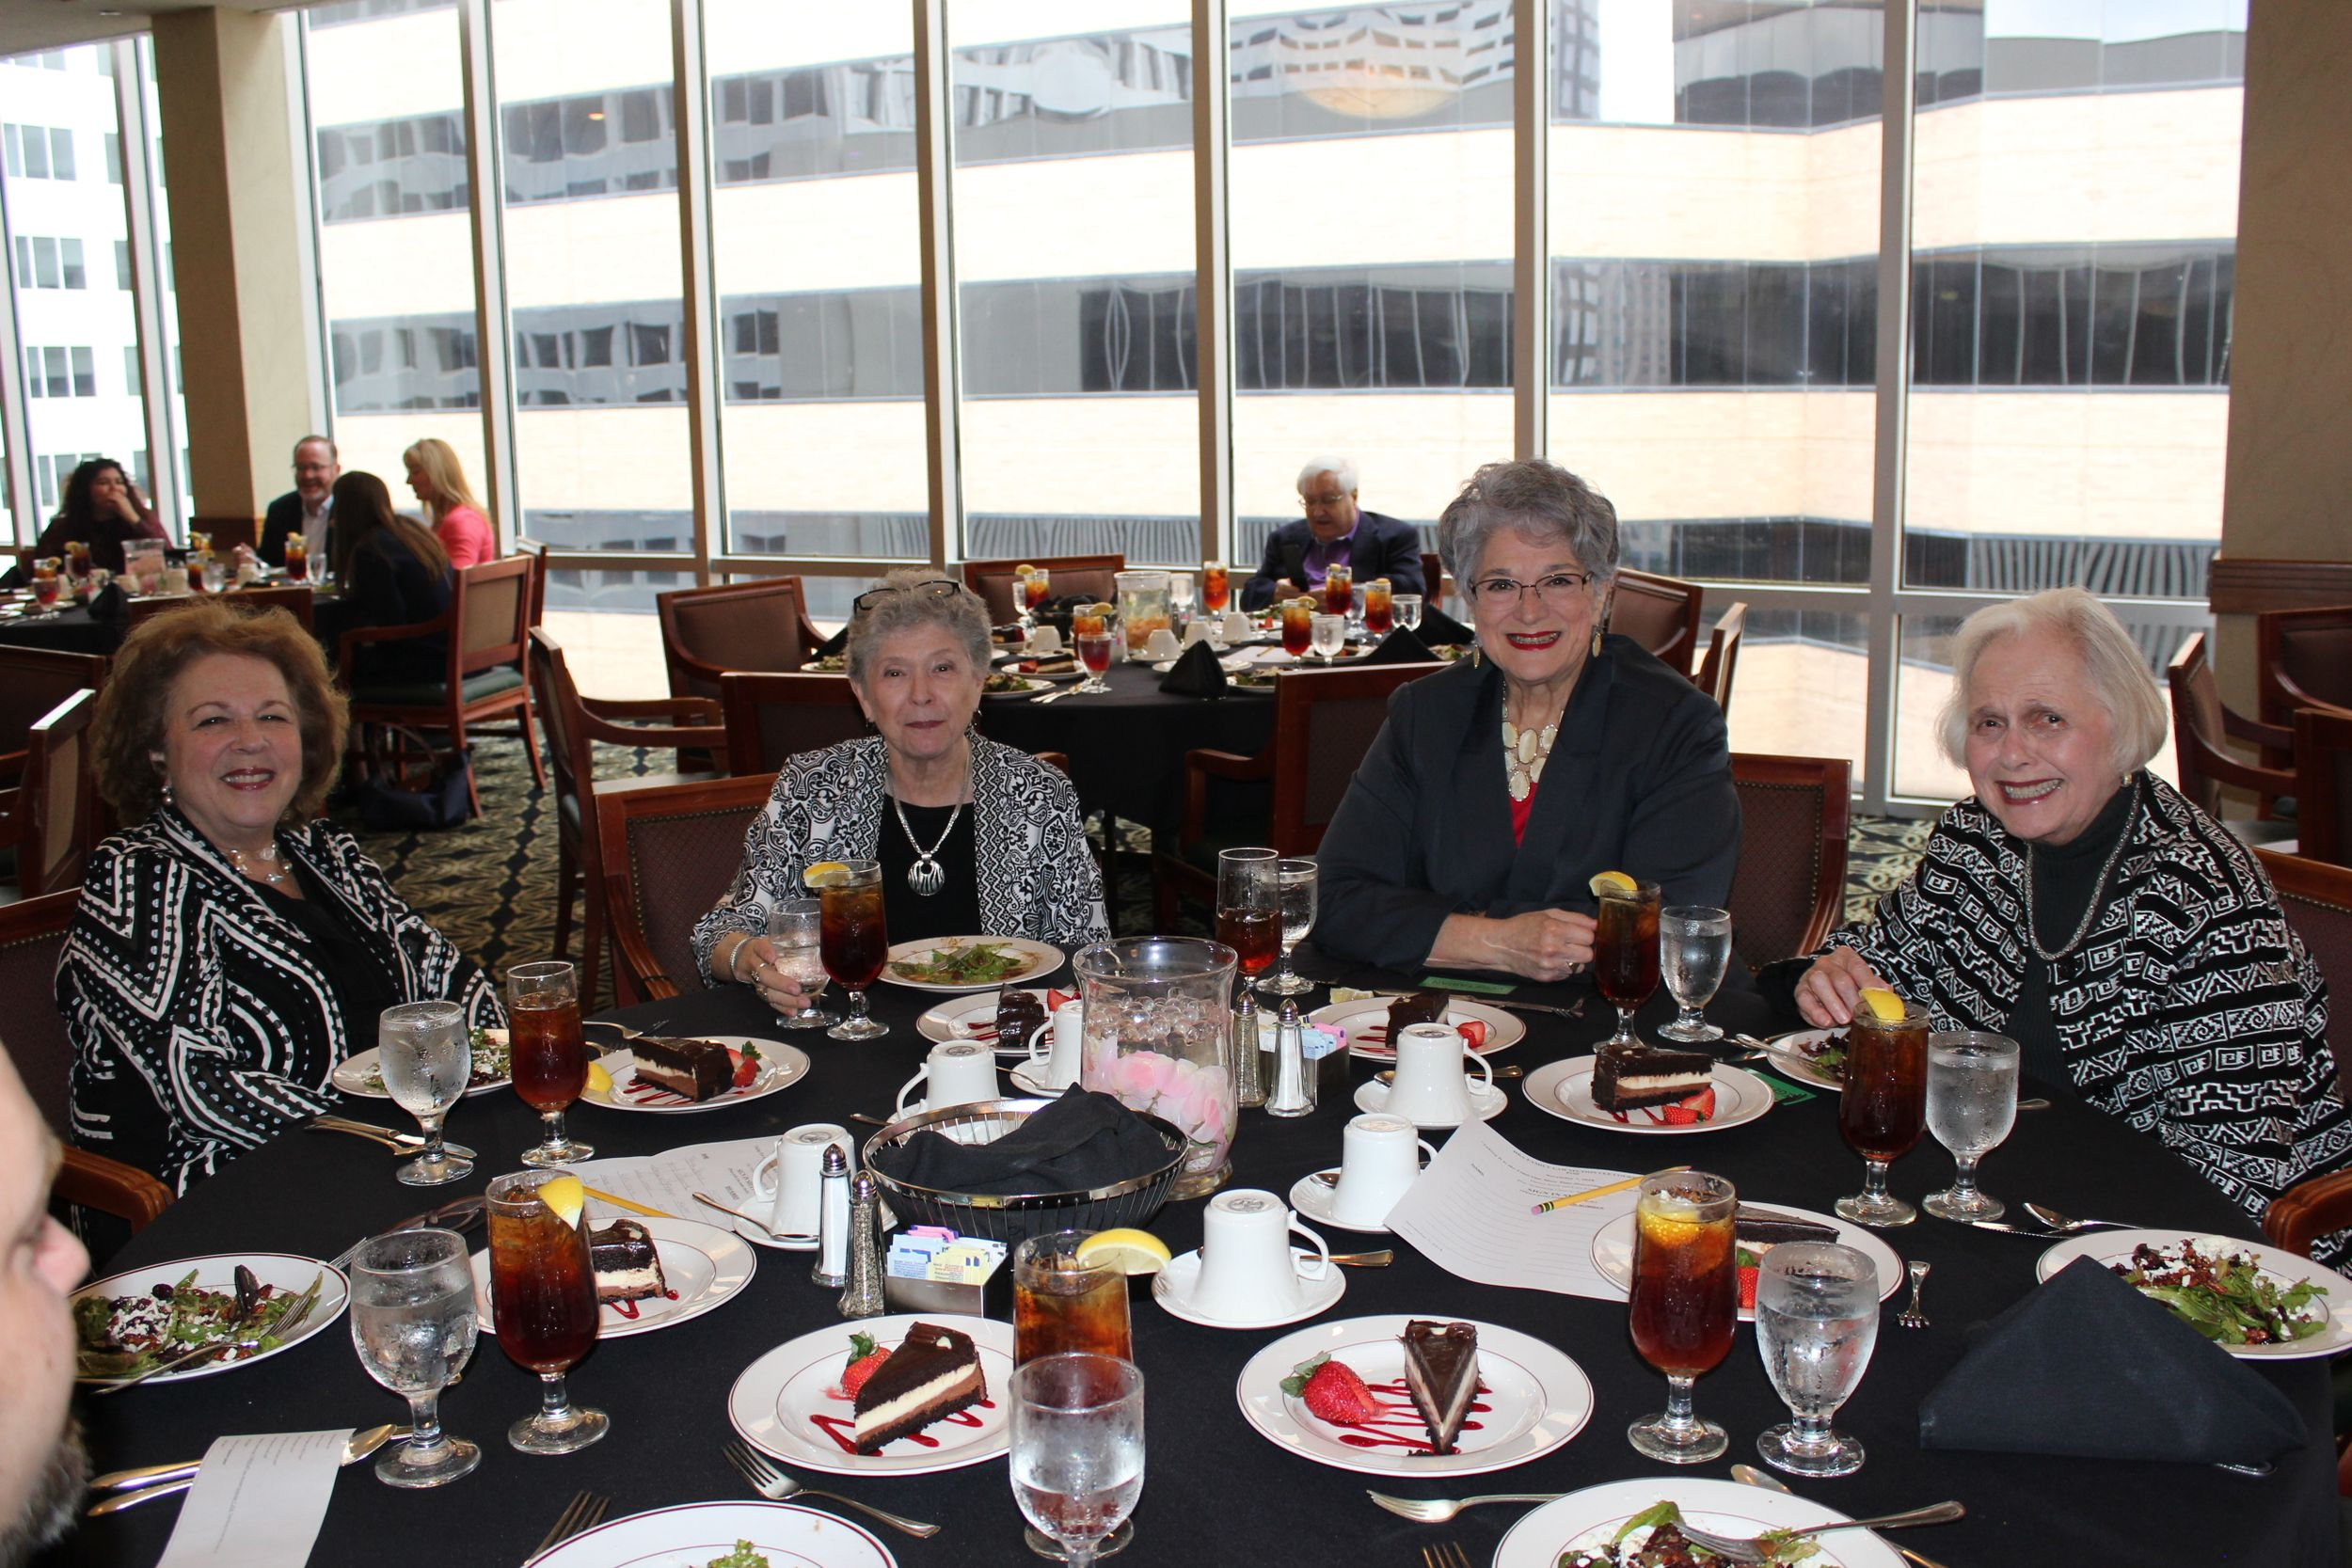 Four middle-aged women in professional attire sit at the far end of a circular table, smiling at the camera. There is food in front of them and a large window behind them.